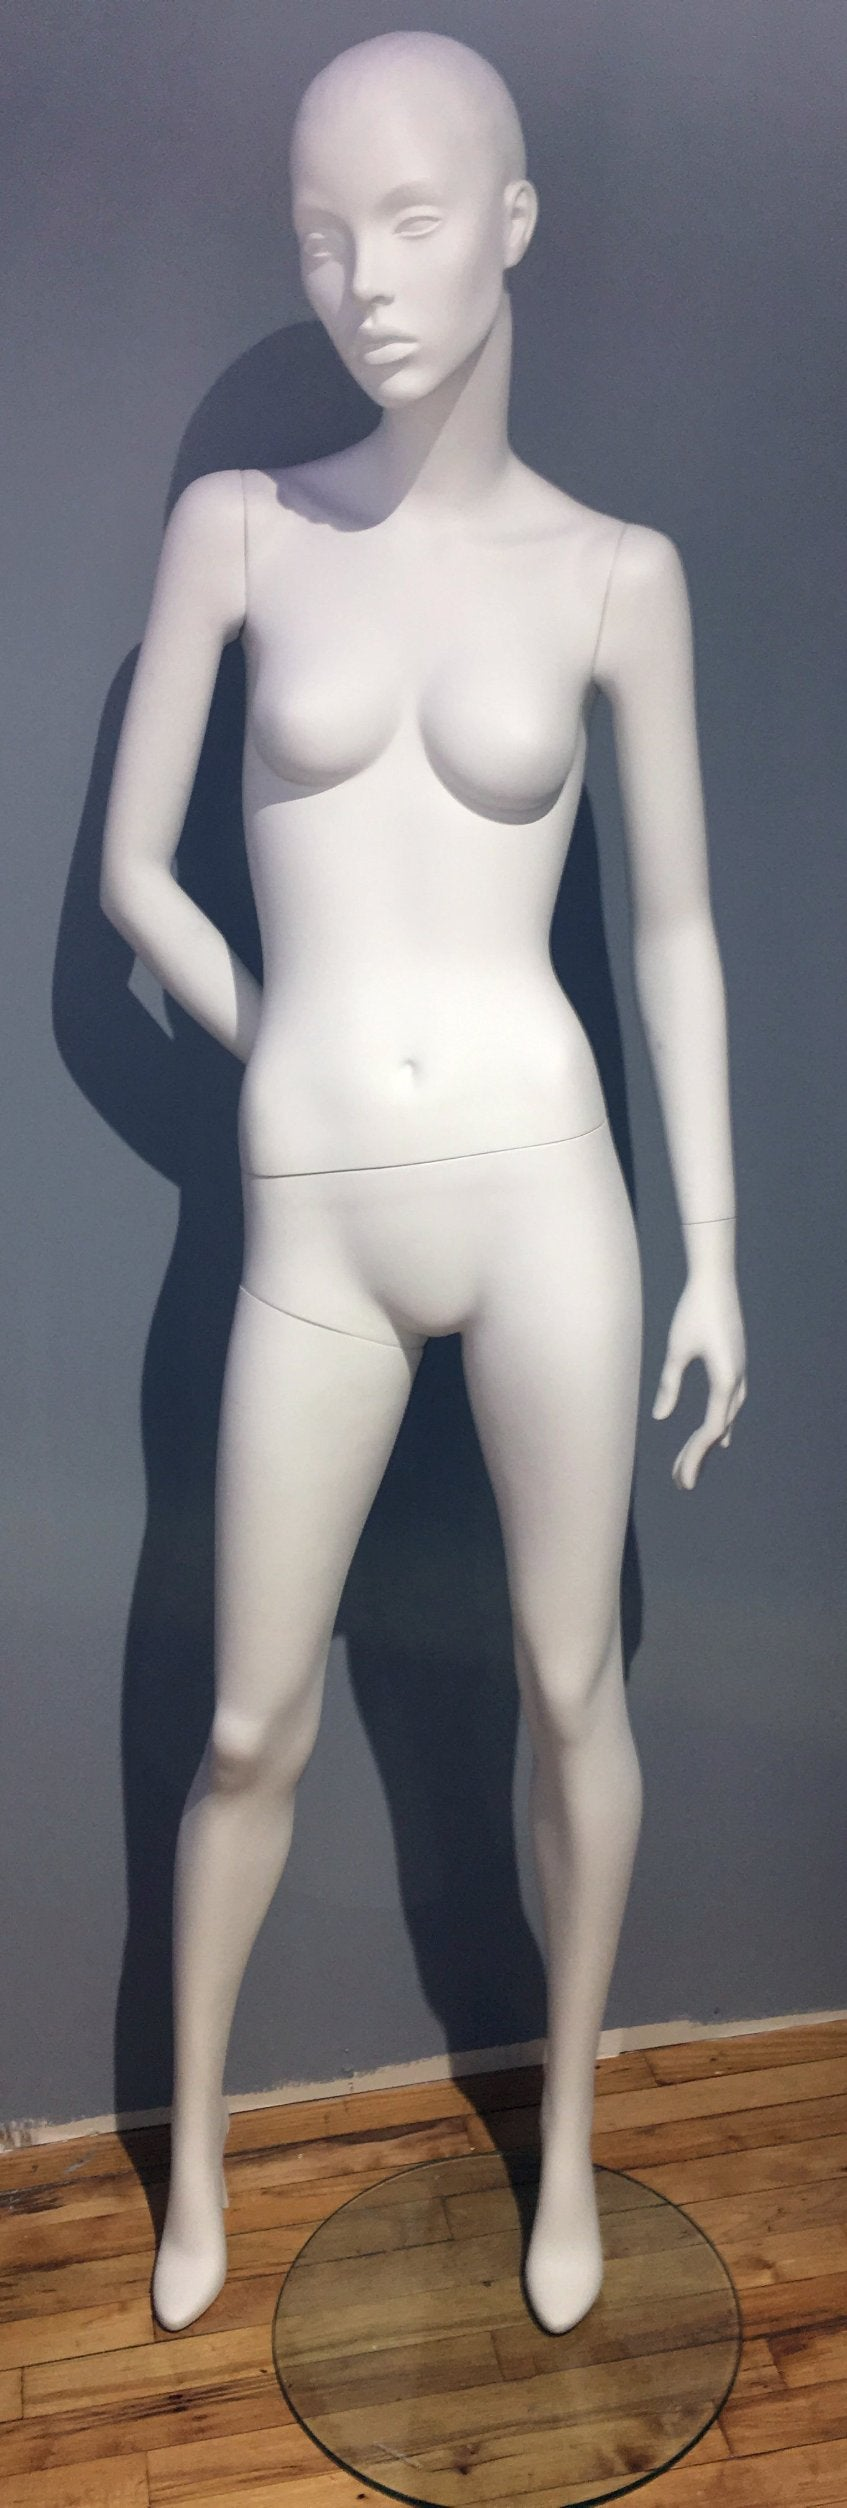 pure white female mannequin with legs shoulder width apart and right hand behind back